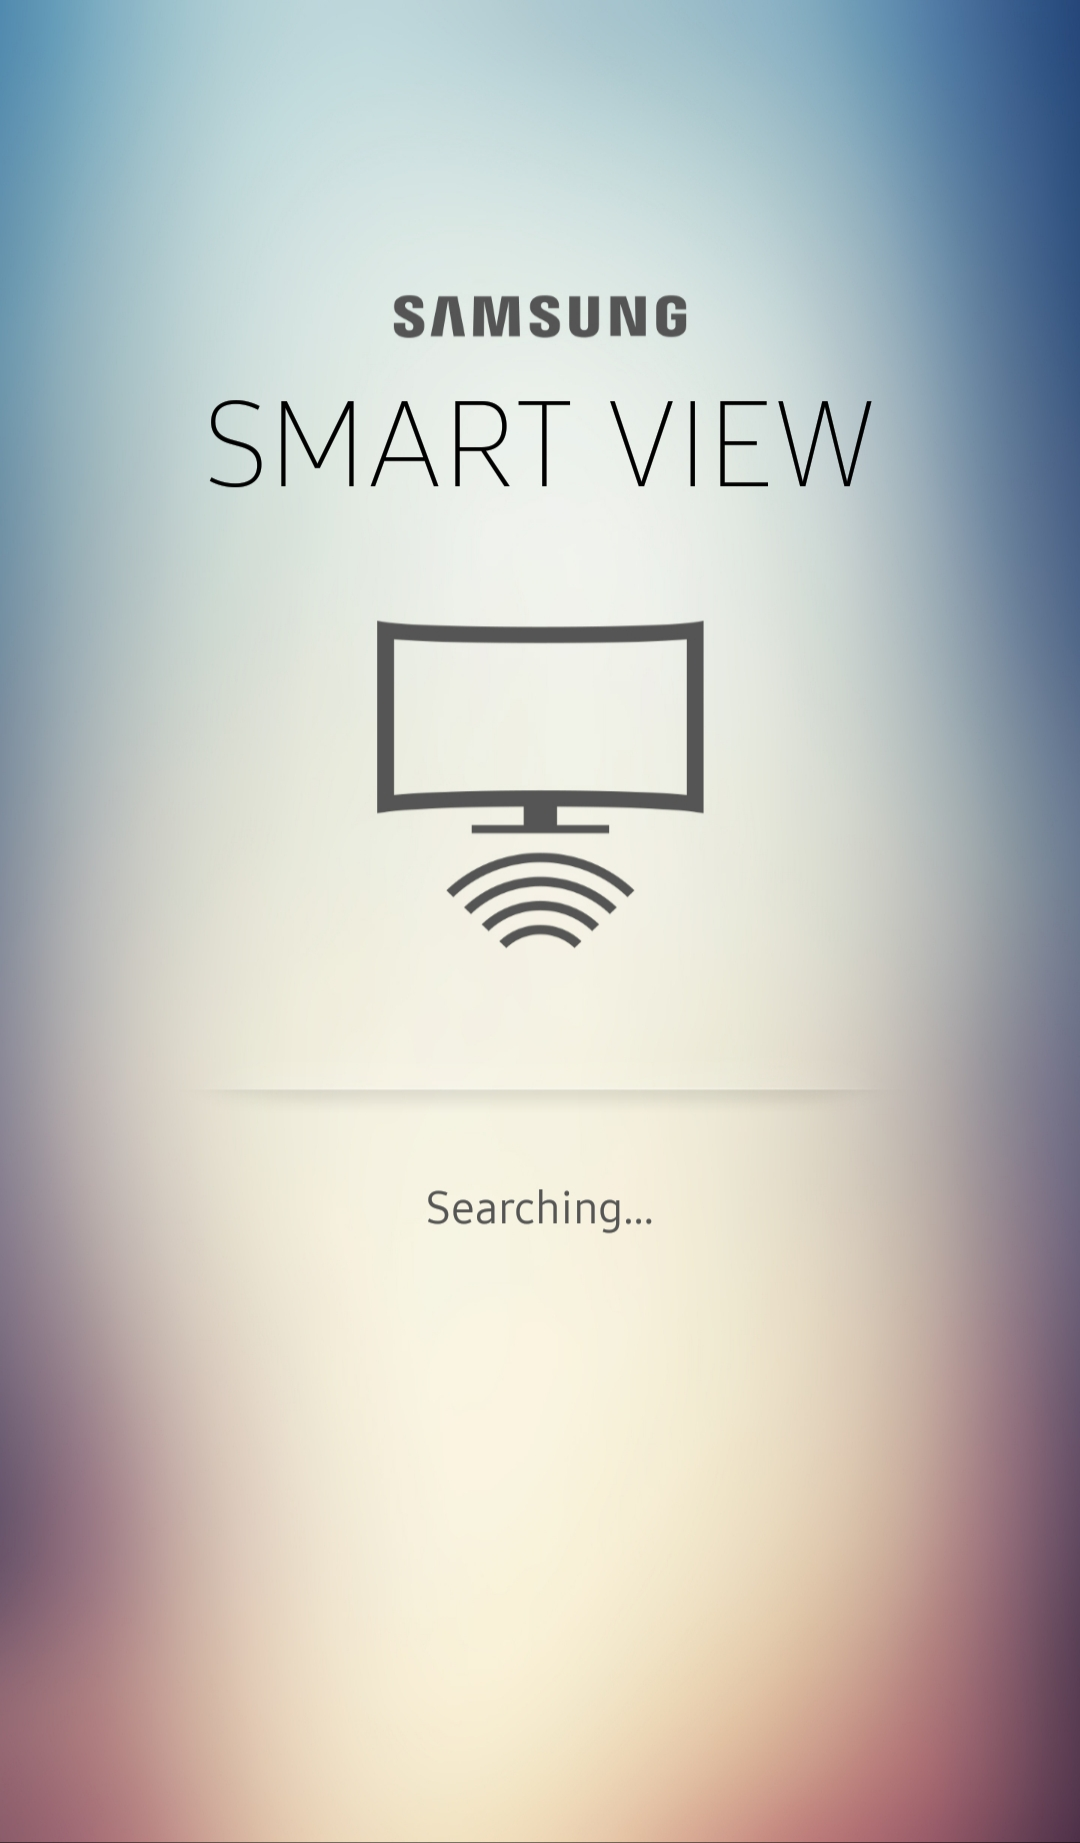 Smart View app automatically searches for TV to connect